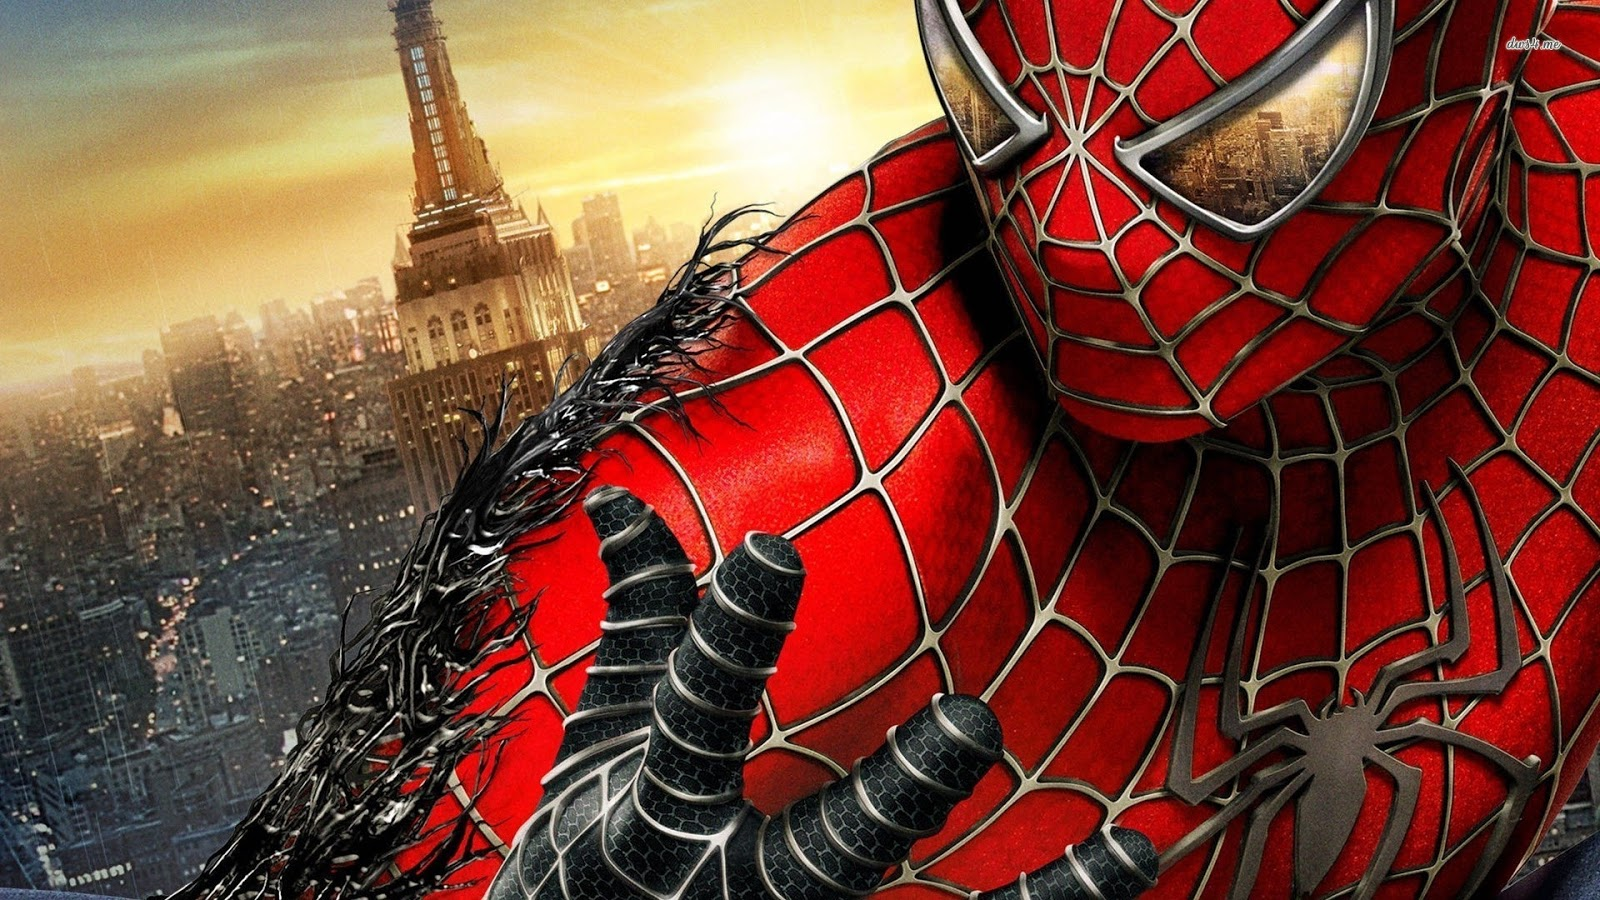 Cool Spiderman Images HD Download